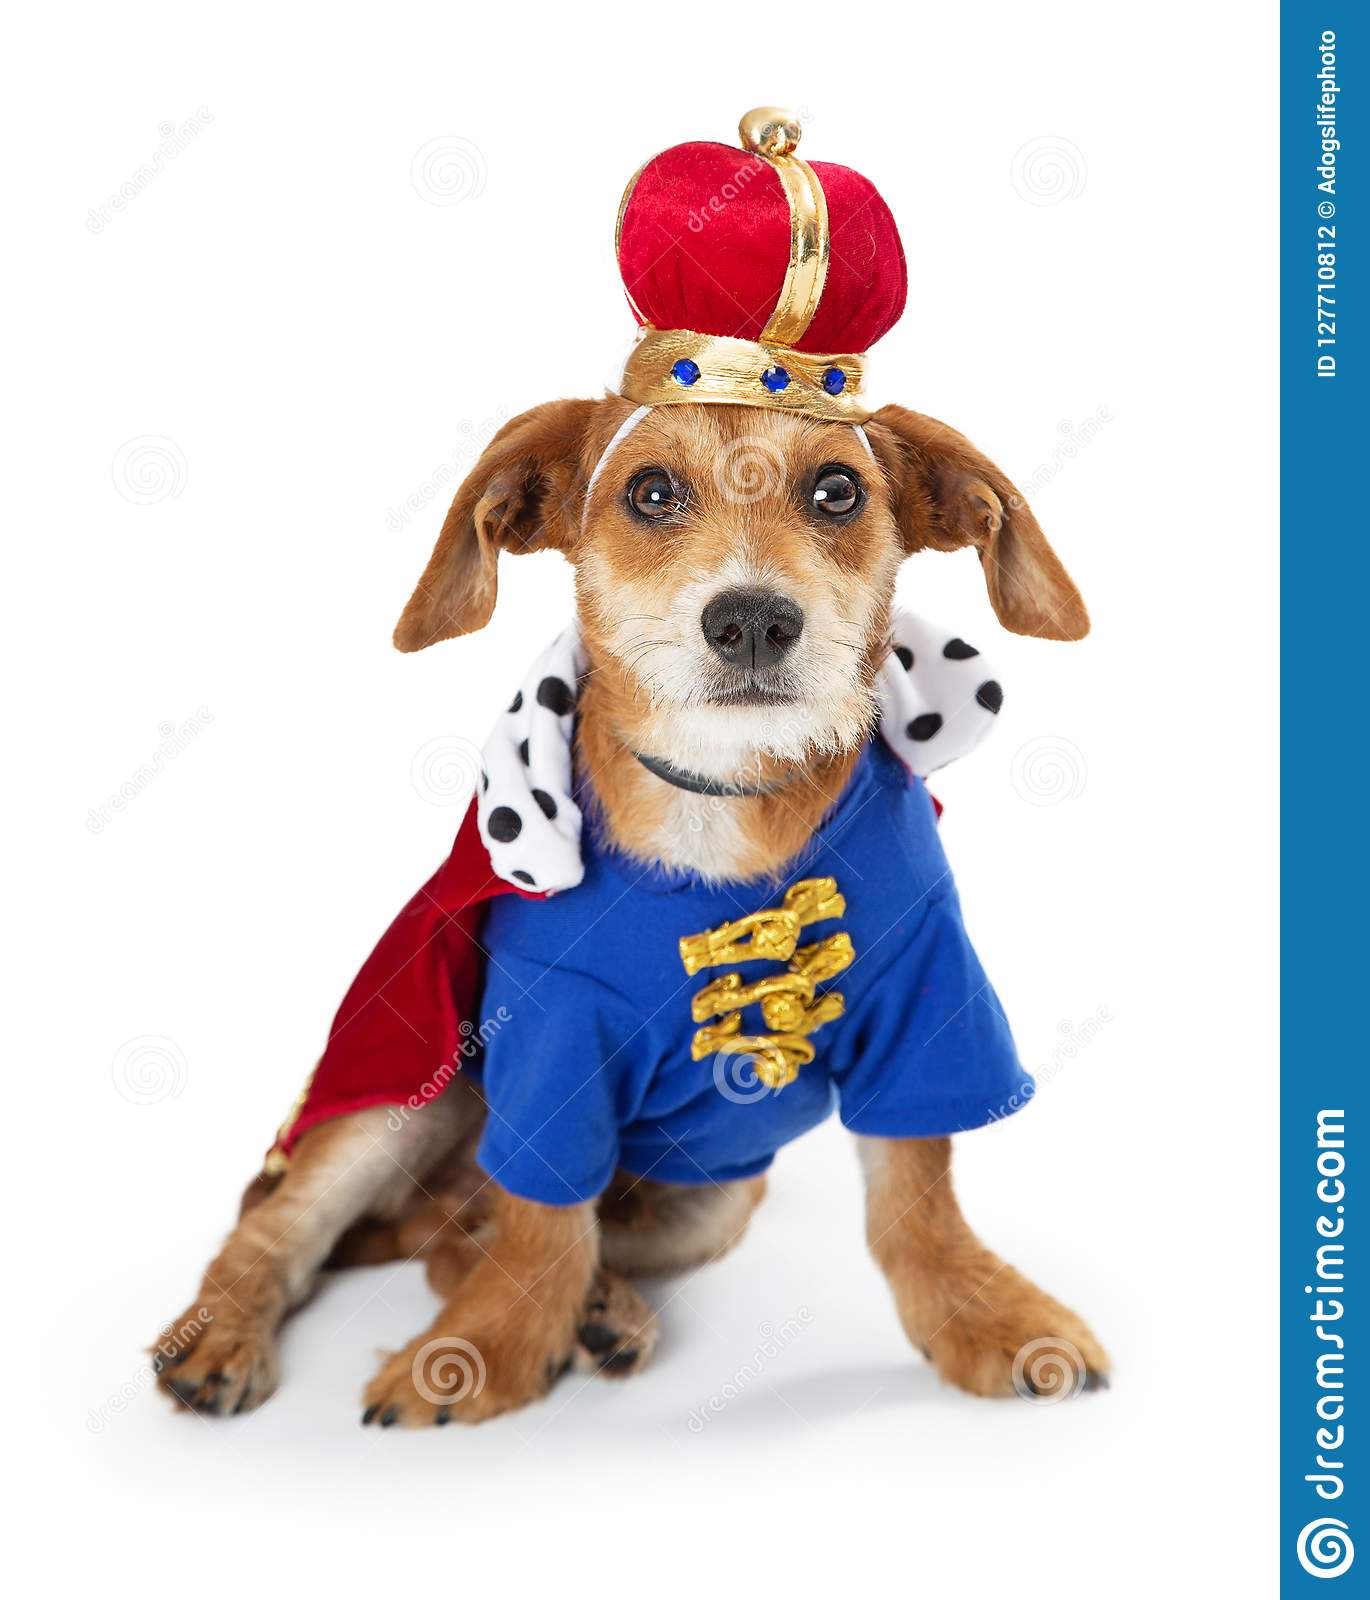 Puppy Dog Wearing King Halloween Costume